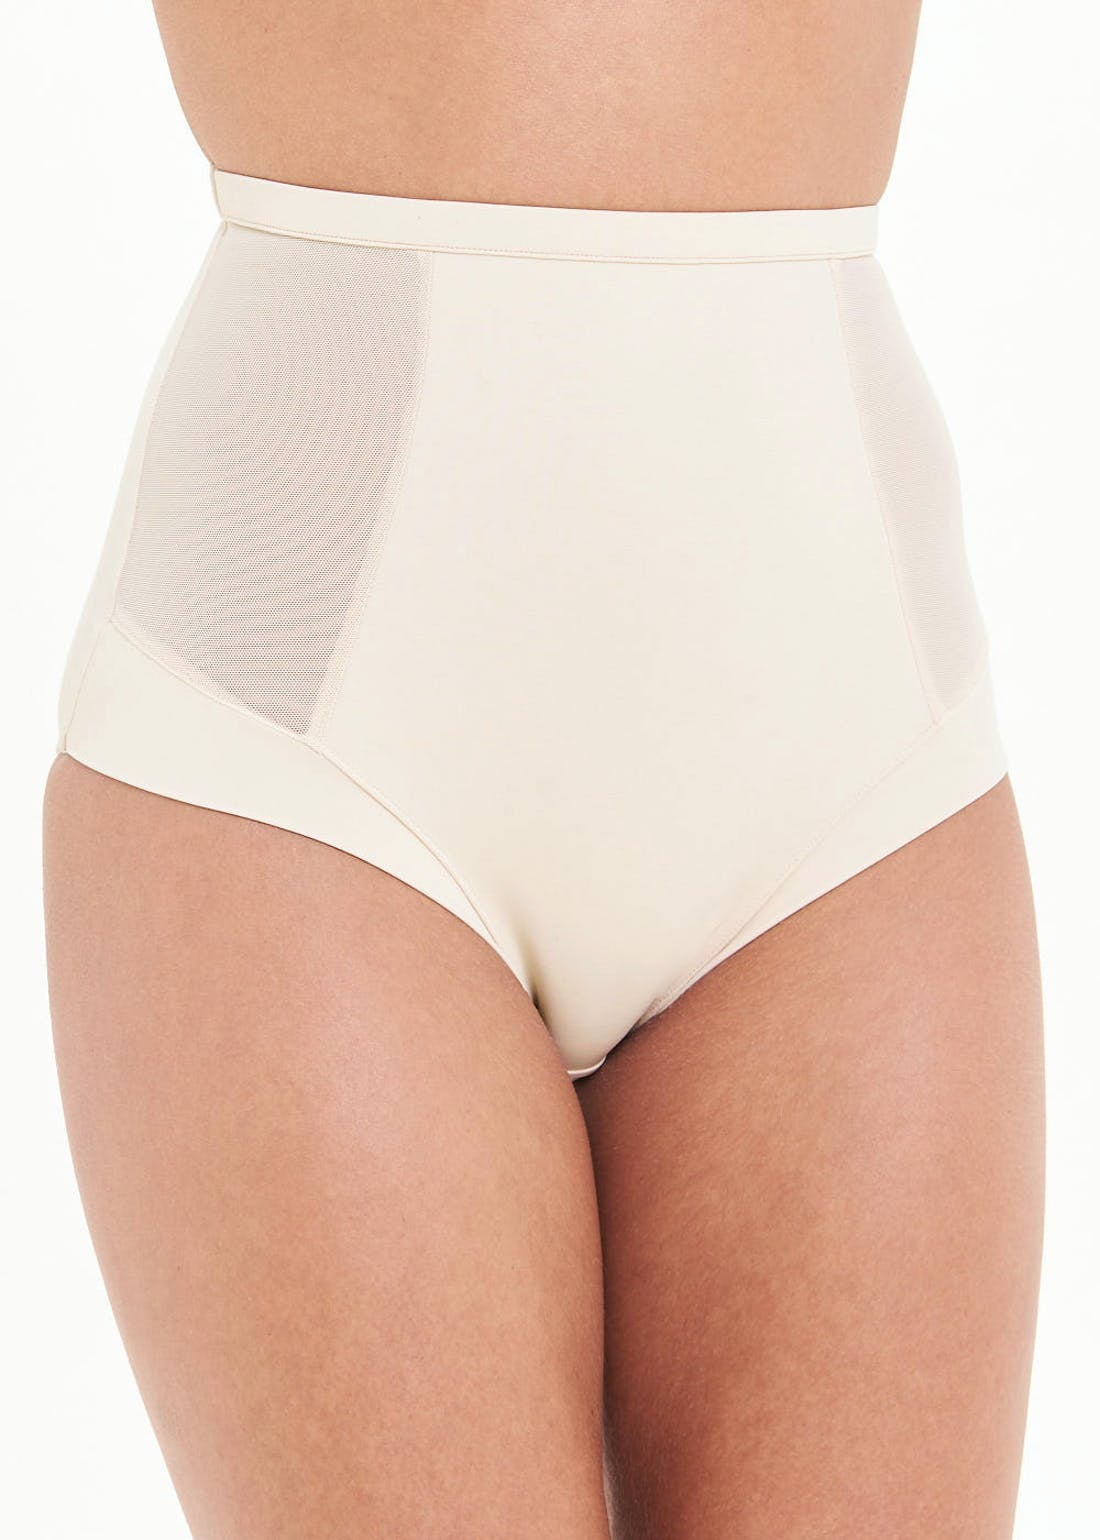 High Waisted Control Knickers